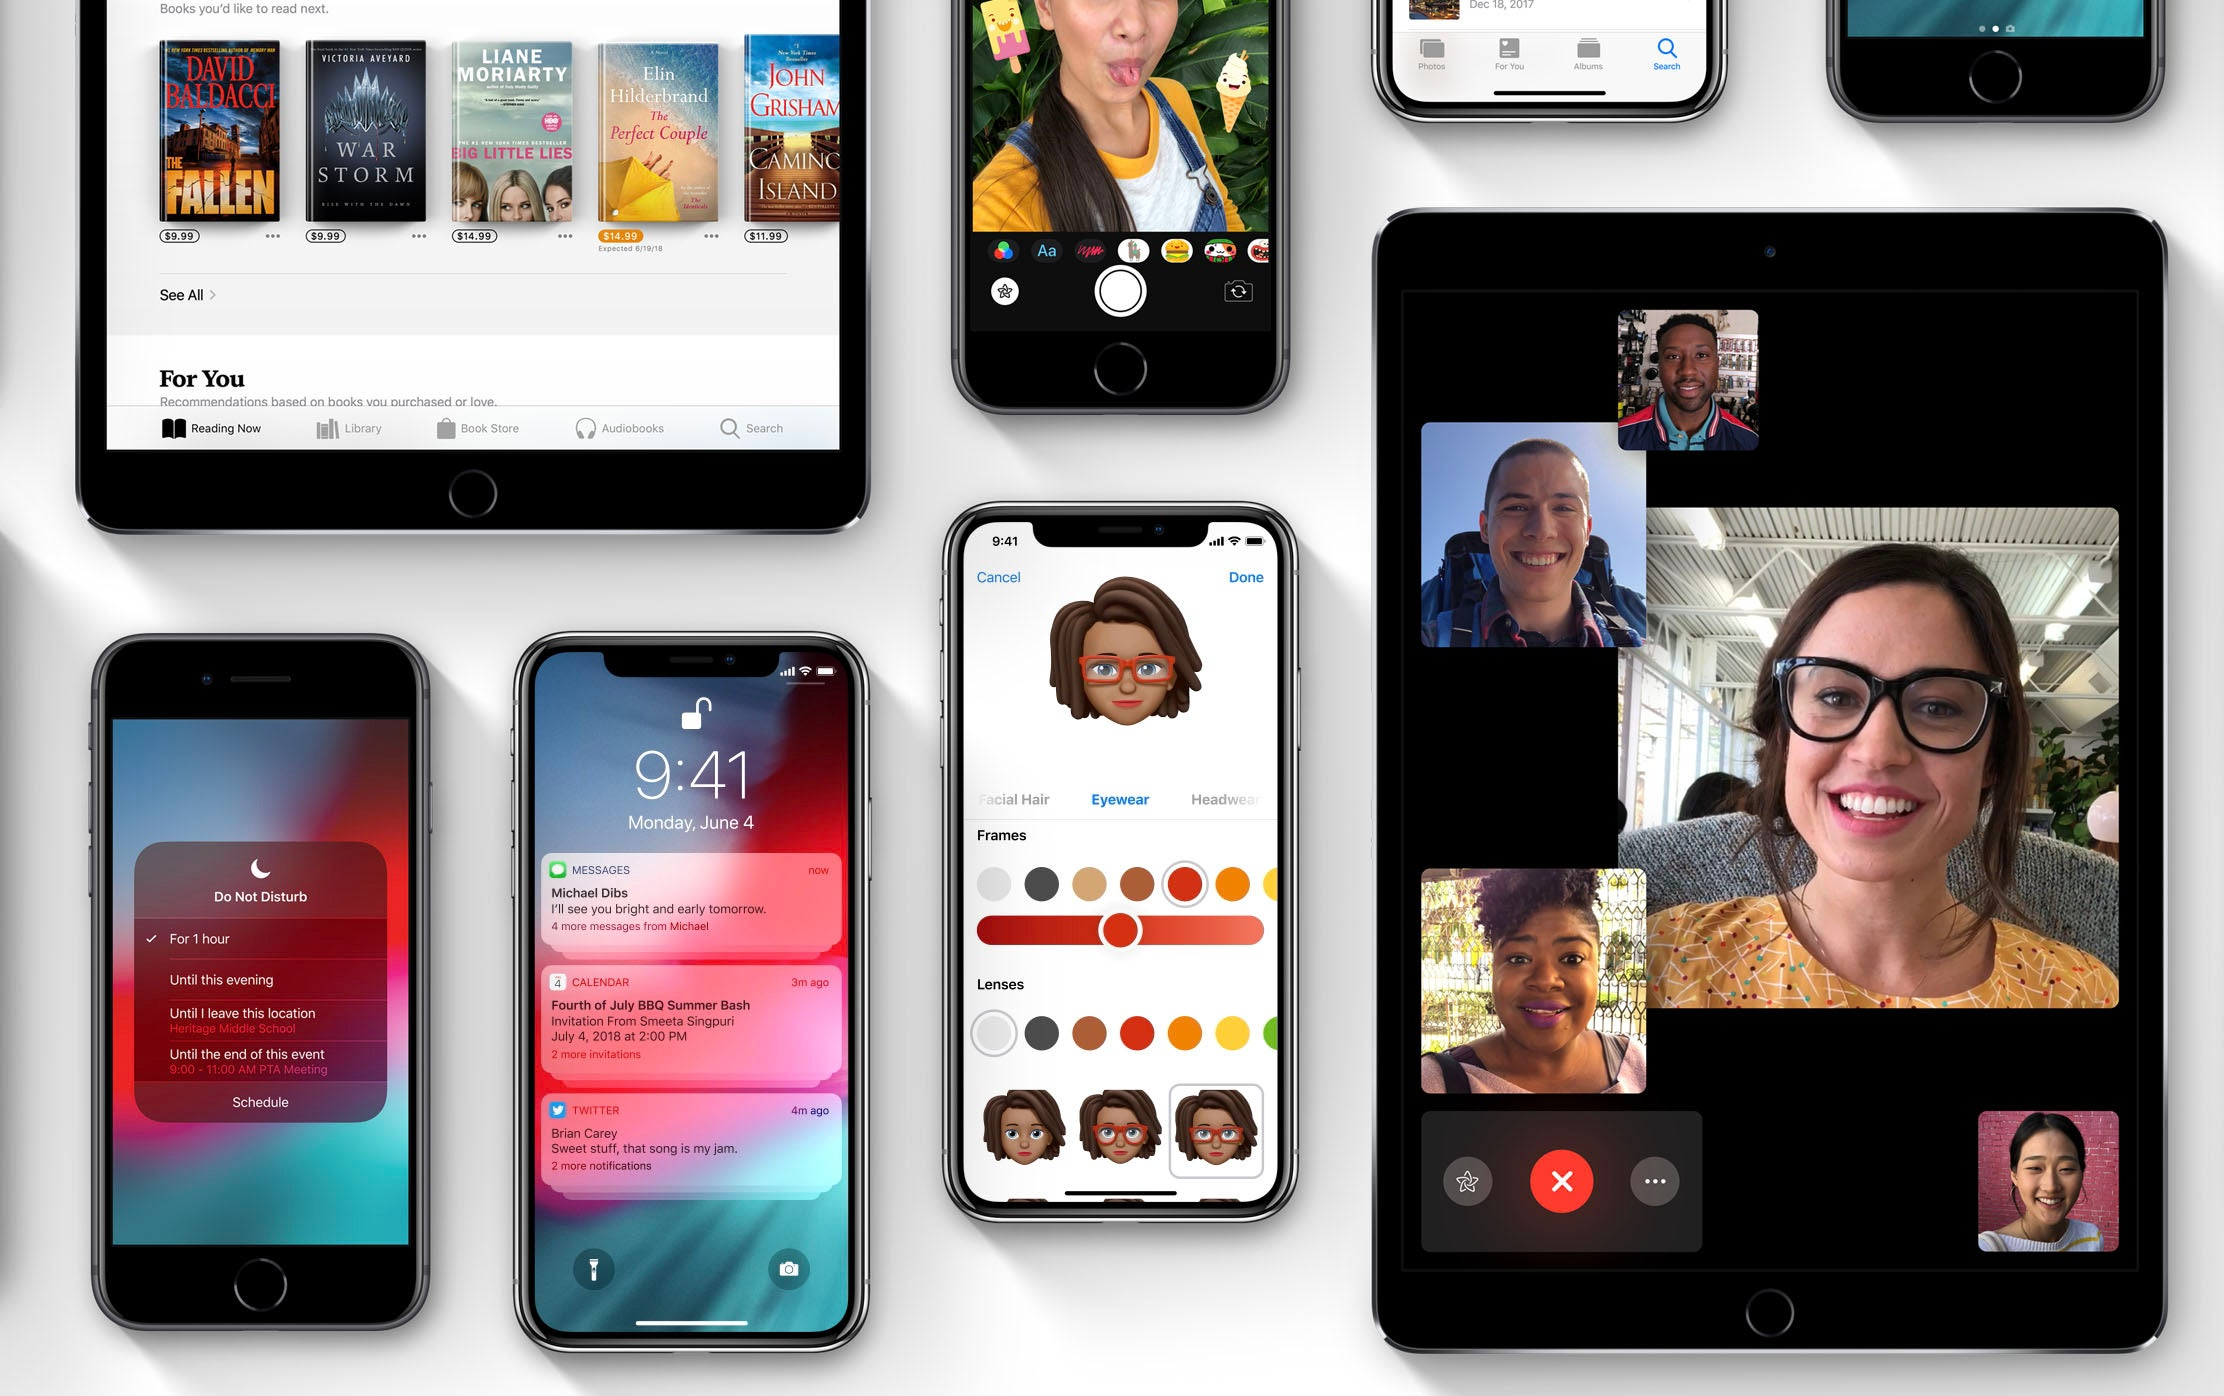 Download The iOS 12 Beta If You Dare